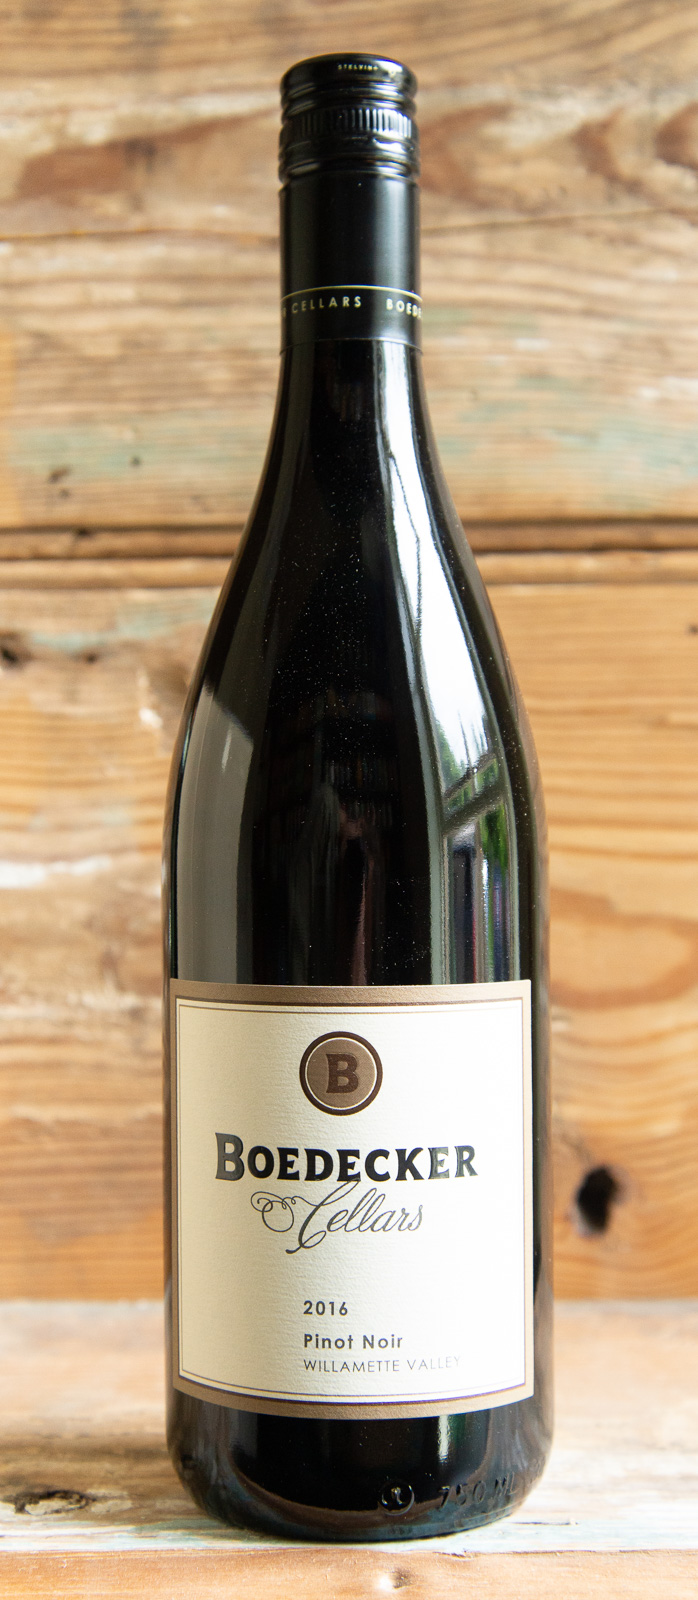 Boedecker Pinot Noir 2016 - Origin: OregonRetail: $27.95 | Sale $25.15Boedecker Cellars, owned by husband-and-wife team of Stewart Boedecker and Athena Pappas, is a full-blown urban winery that churns out some of Oregon's best pinot noir. The 2016 Pinot Noir draws you in with heavy aromas of sour cherry and cranberry, with undertones of wet earth and mushrooms. On the palate you will find these same red fruit flavors, which lead into a smooth, complex finish. Significant time in seasoned French oak contributes to the complexity and structure of this wine, while also adding a very interesting smoky component on the nose and palate.100% Pinot Noir